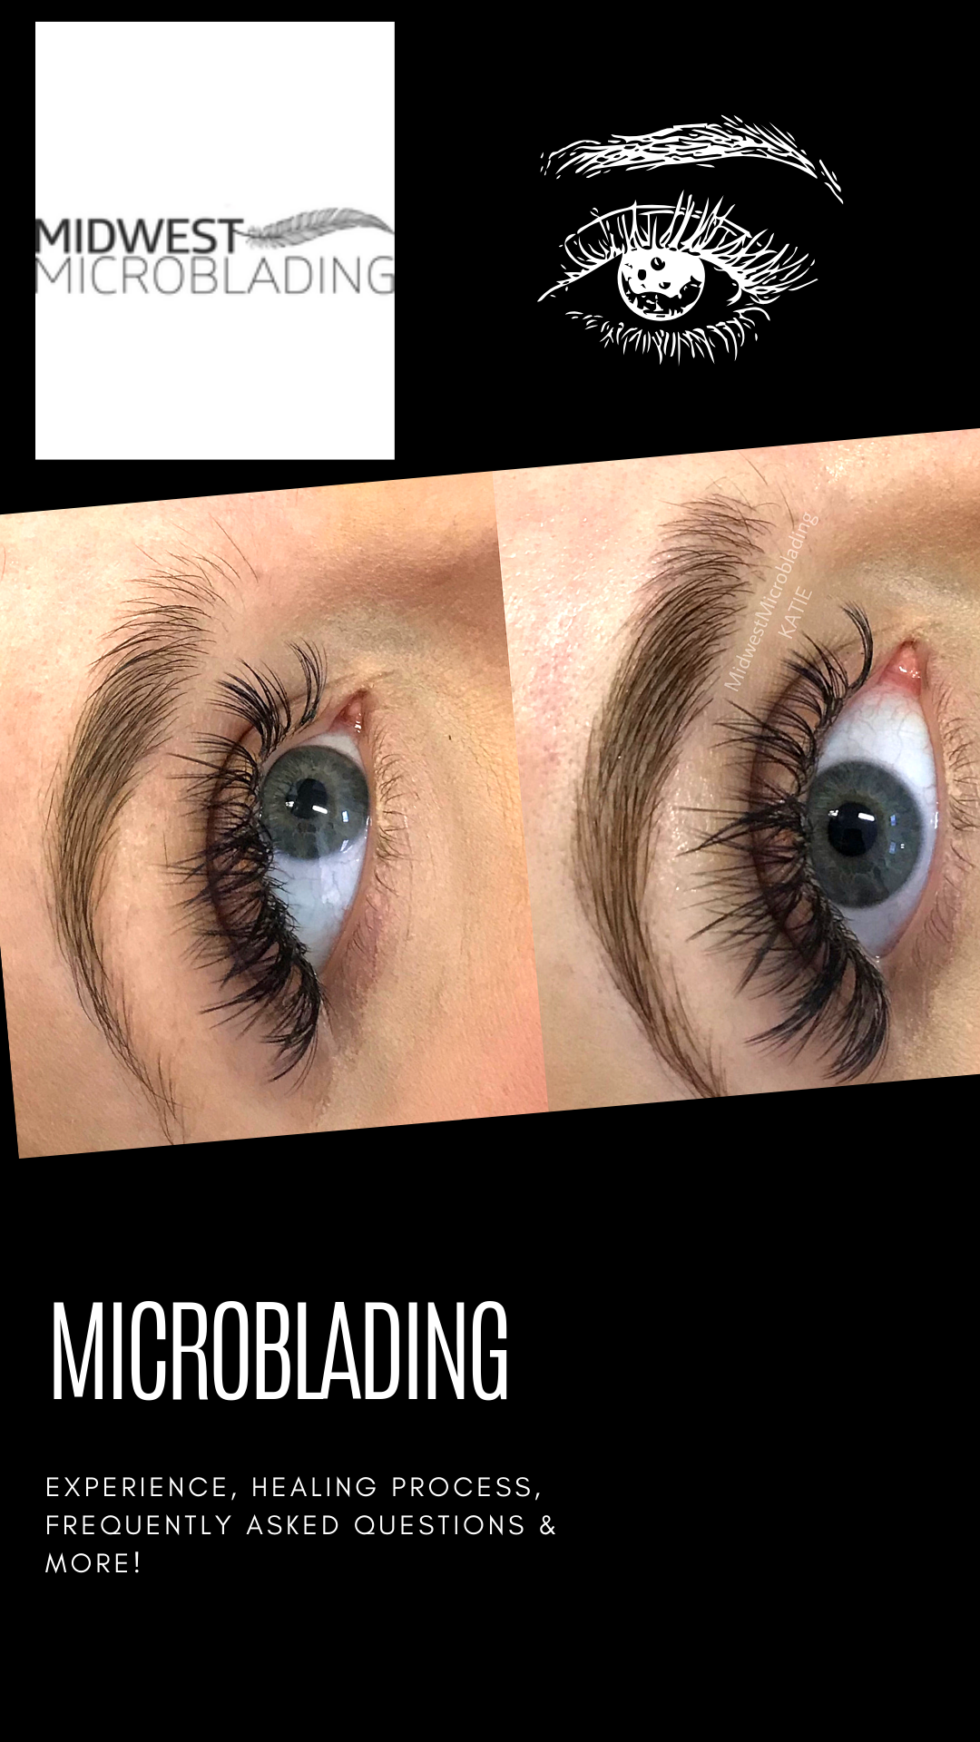 178361b105b Microblading With Midwest Microblading – AbbyBaffoe